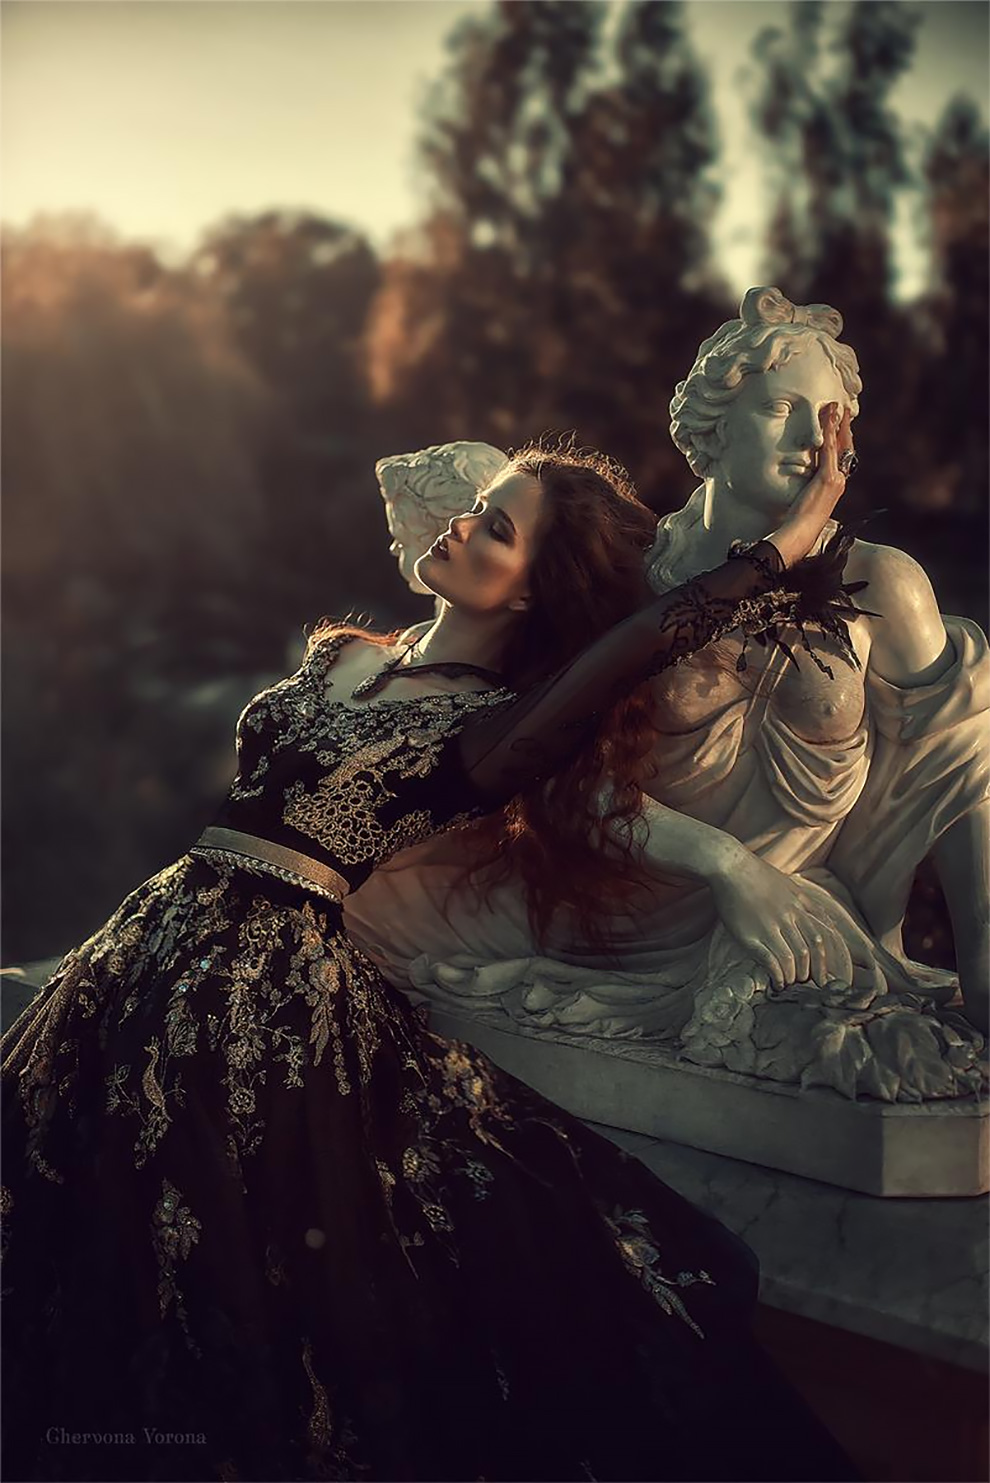 This Ukrainian Photographer Captures A Fairytale Photo Masterpieces 17 This Ukrainian Photographer Captures A Fairytale Photo Masterpieces